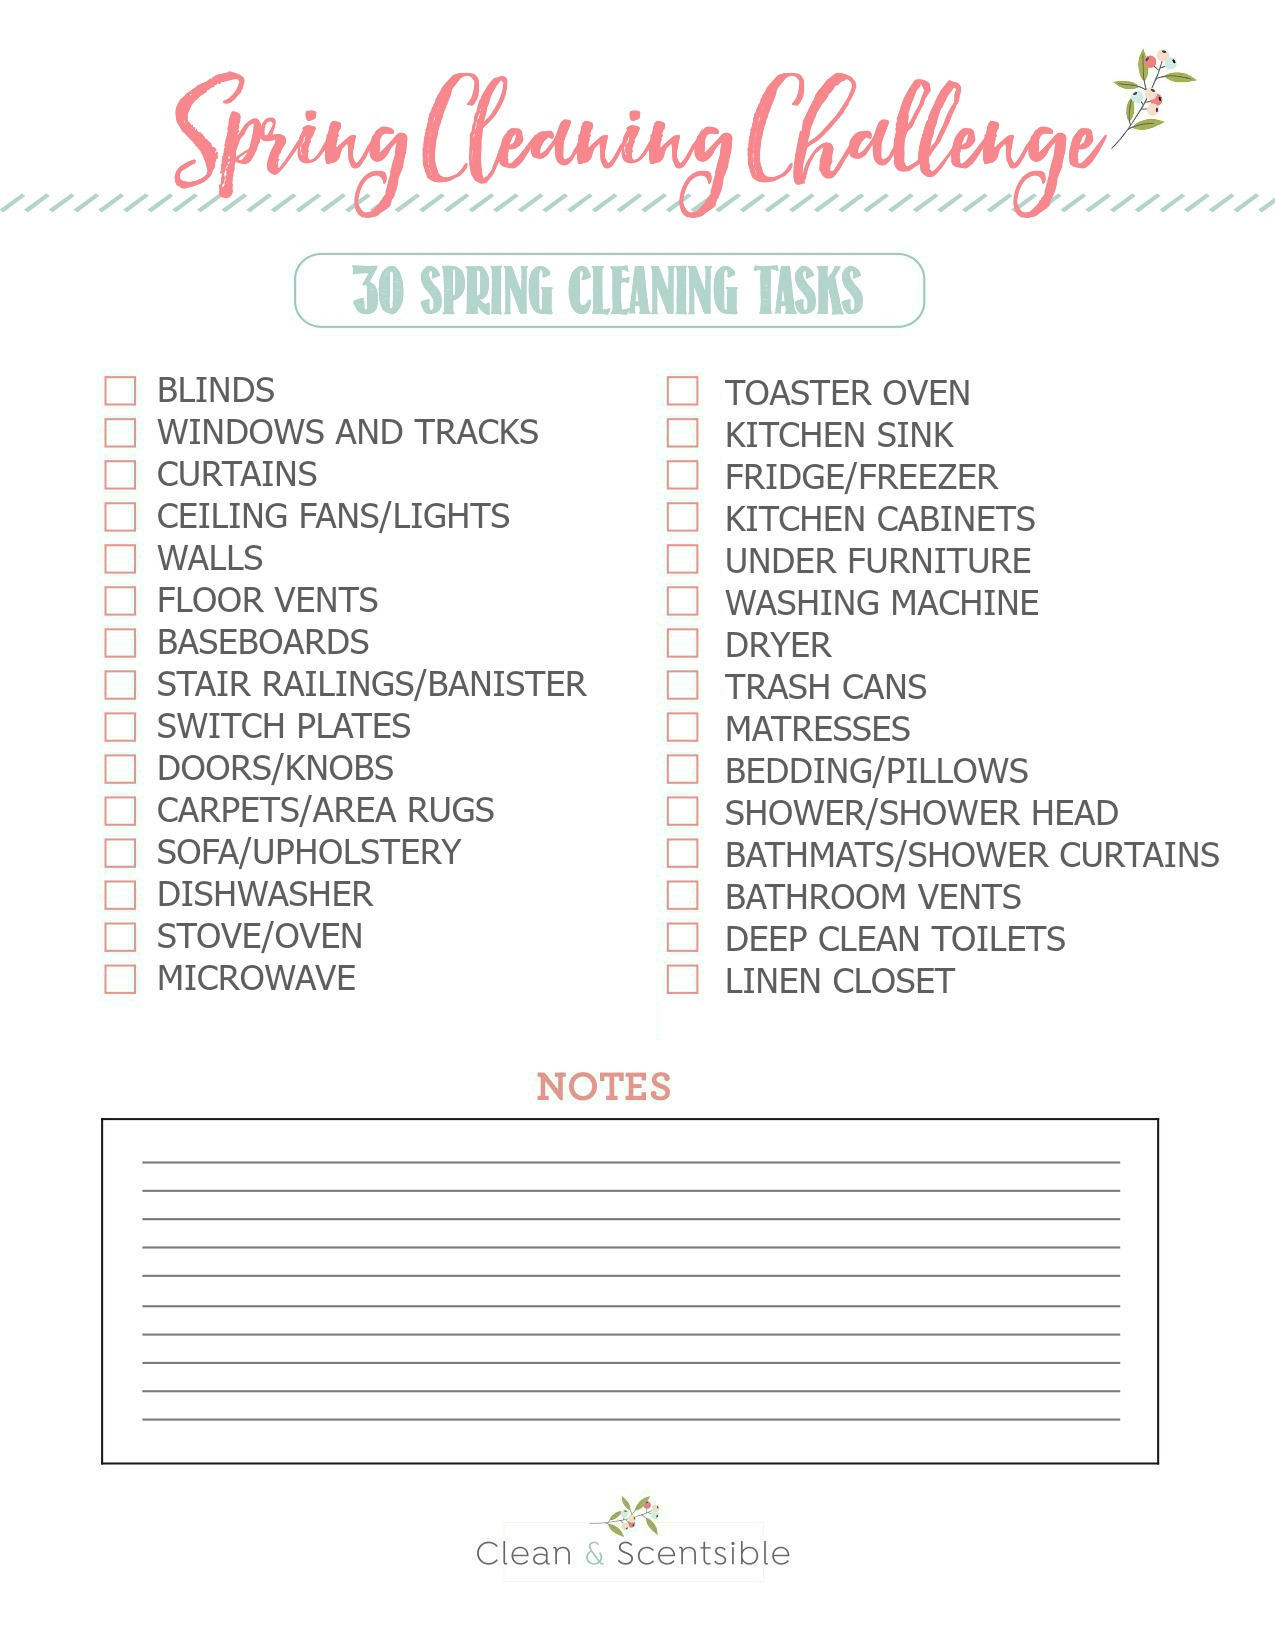 Free printable spring cleaning checklist.